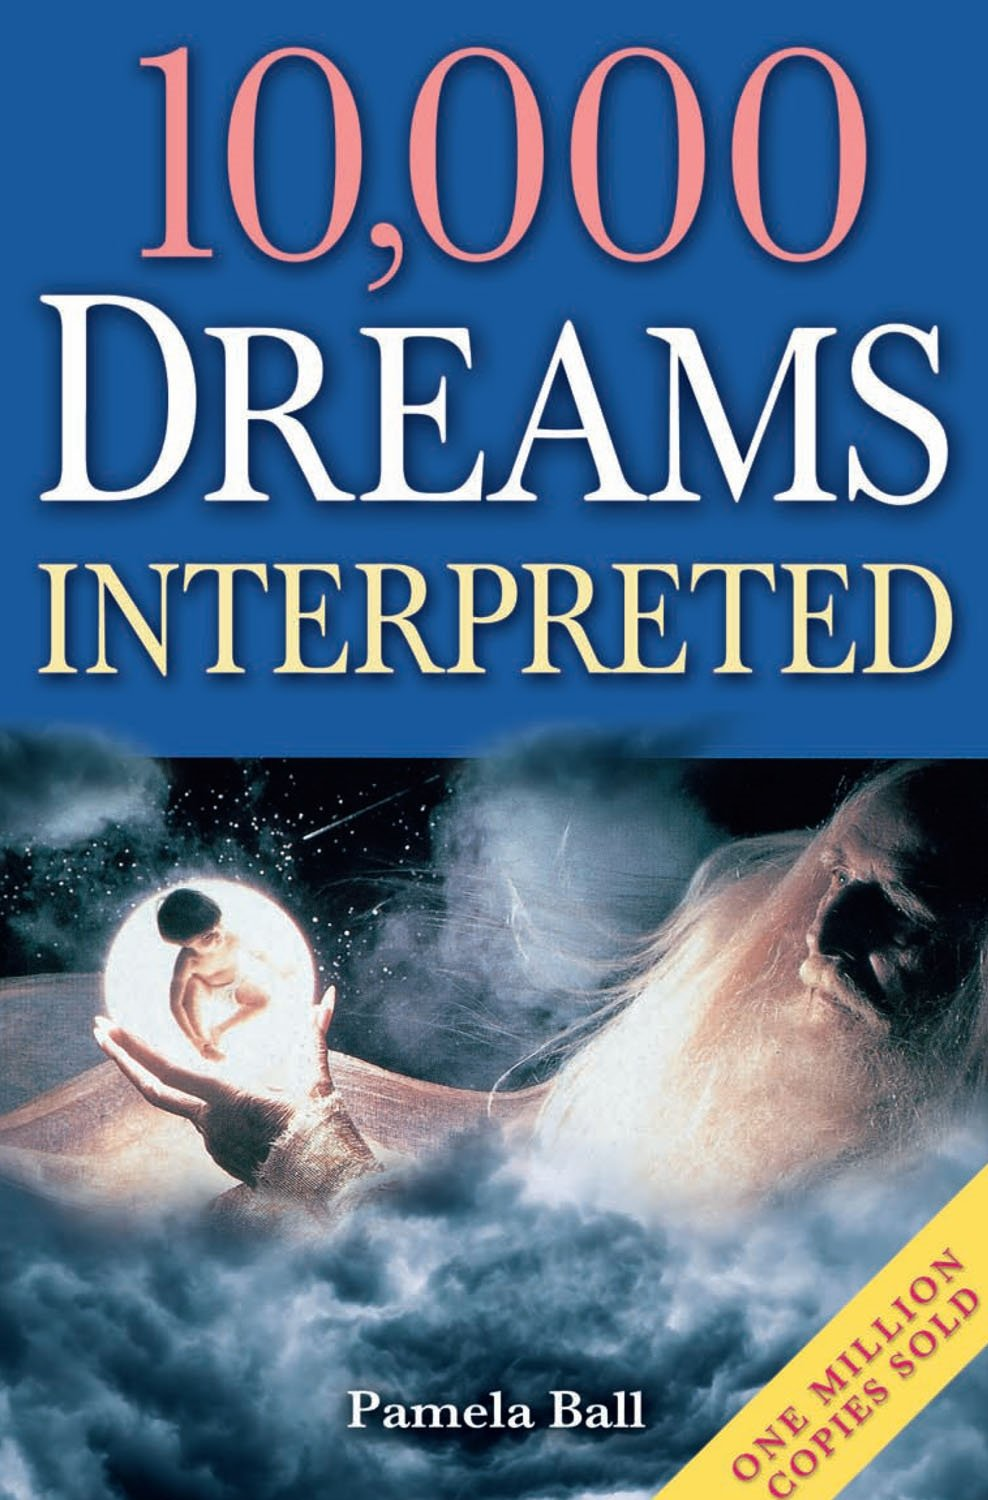 10, 000 Dreams Interpreted: Pamela Ball: 9781848376212: Amazon.com: Books